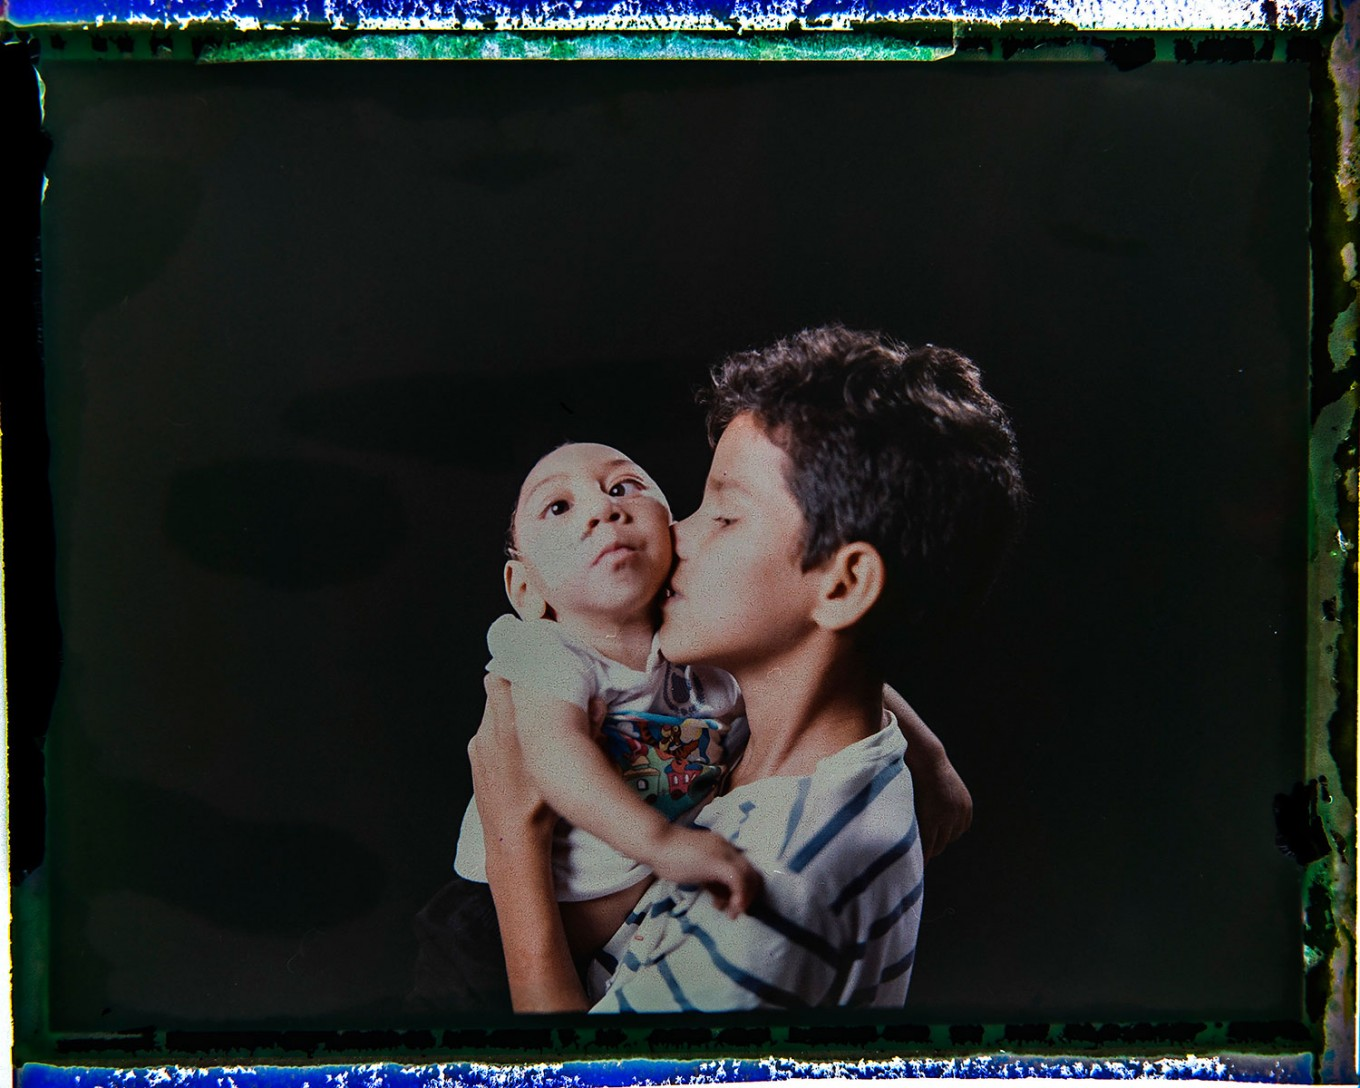 In this Sept. 27, 2016 photo made from a negative recovered from instant film, Elisson Campos poses with his 1-year-old brother, Jose Wesley Campos, who was born with microcephaly, one of many serious medical problems that can be caused by congenital Zika syndrome, in Bonito, Pernambuco state, Brazil. Elisson is very close to his baby brother and loves to hold him in his arms. AP Photo/Felipe Dana